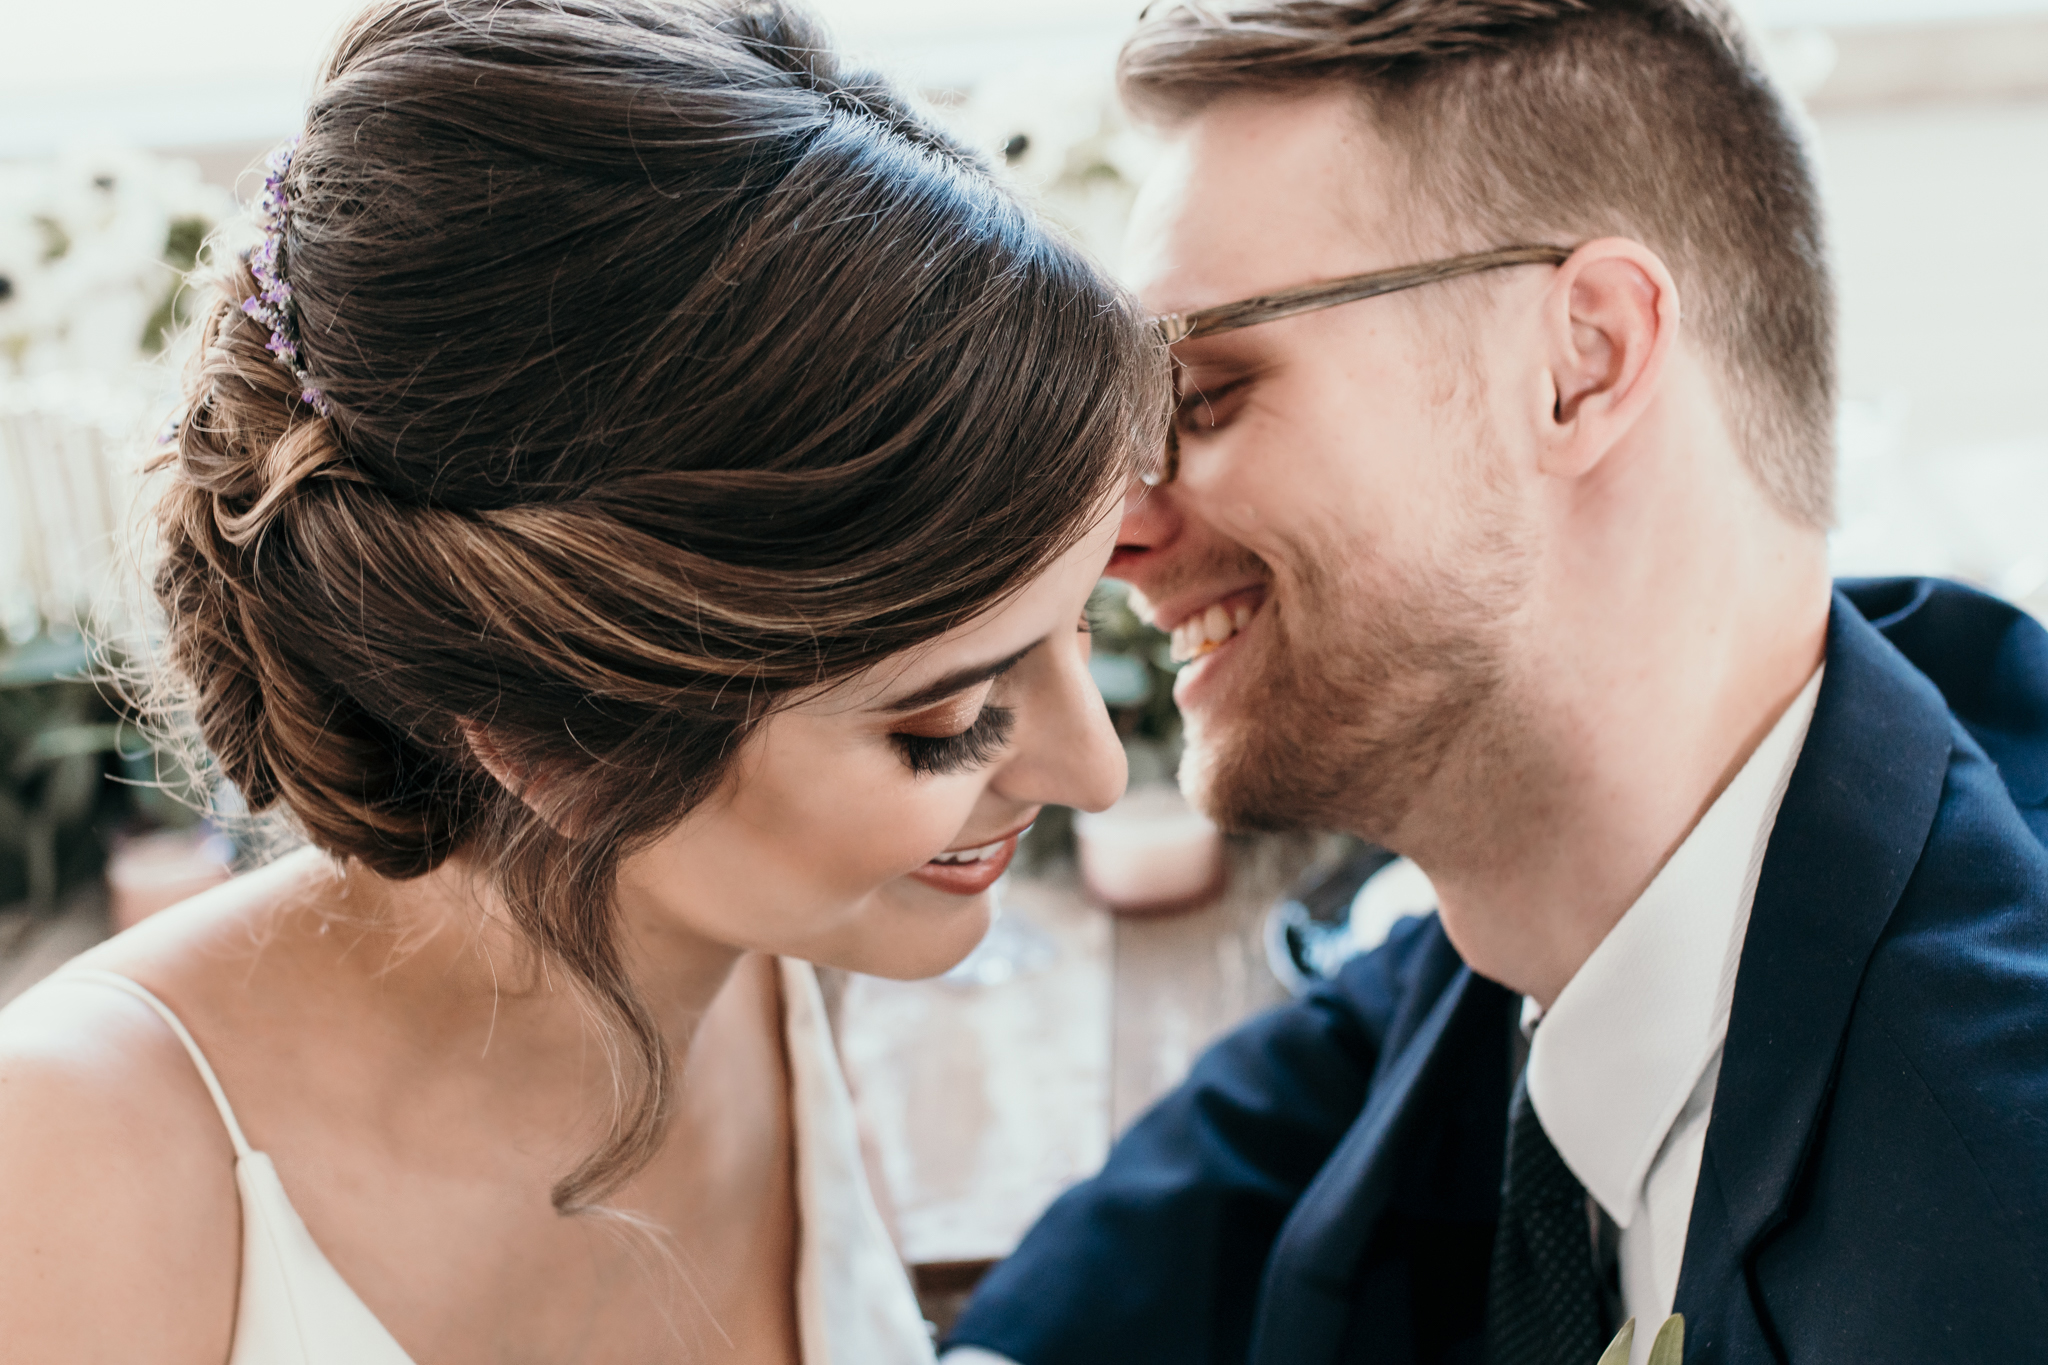 068 Jewel Tone Wedding Styled Shoot_Silver Knot_Montana Wedding Planner_Montana Wedding Photographer_Montana Wedding Videography_Honeybee Weddings-0747.jpg